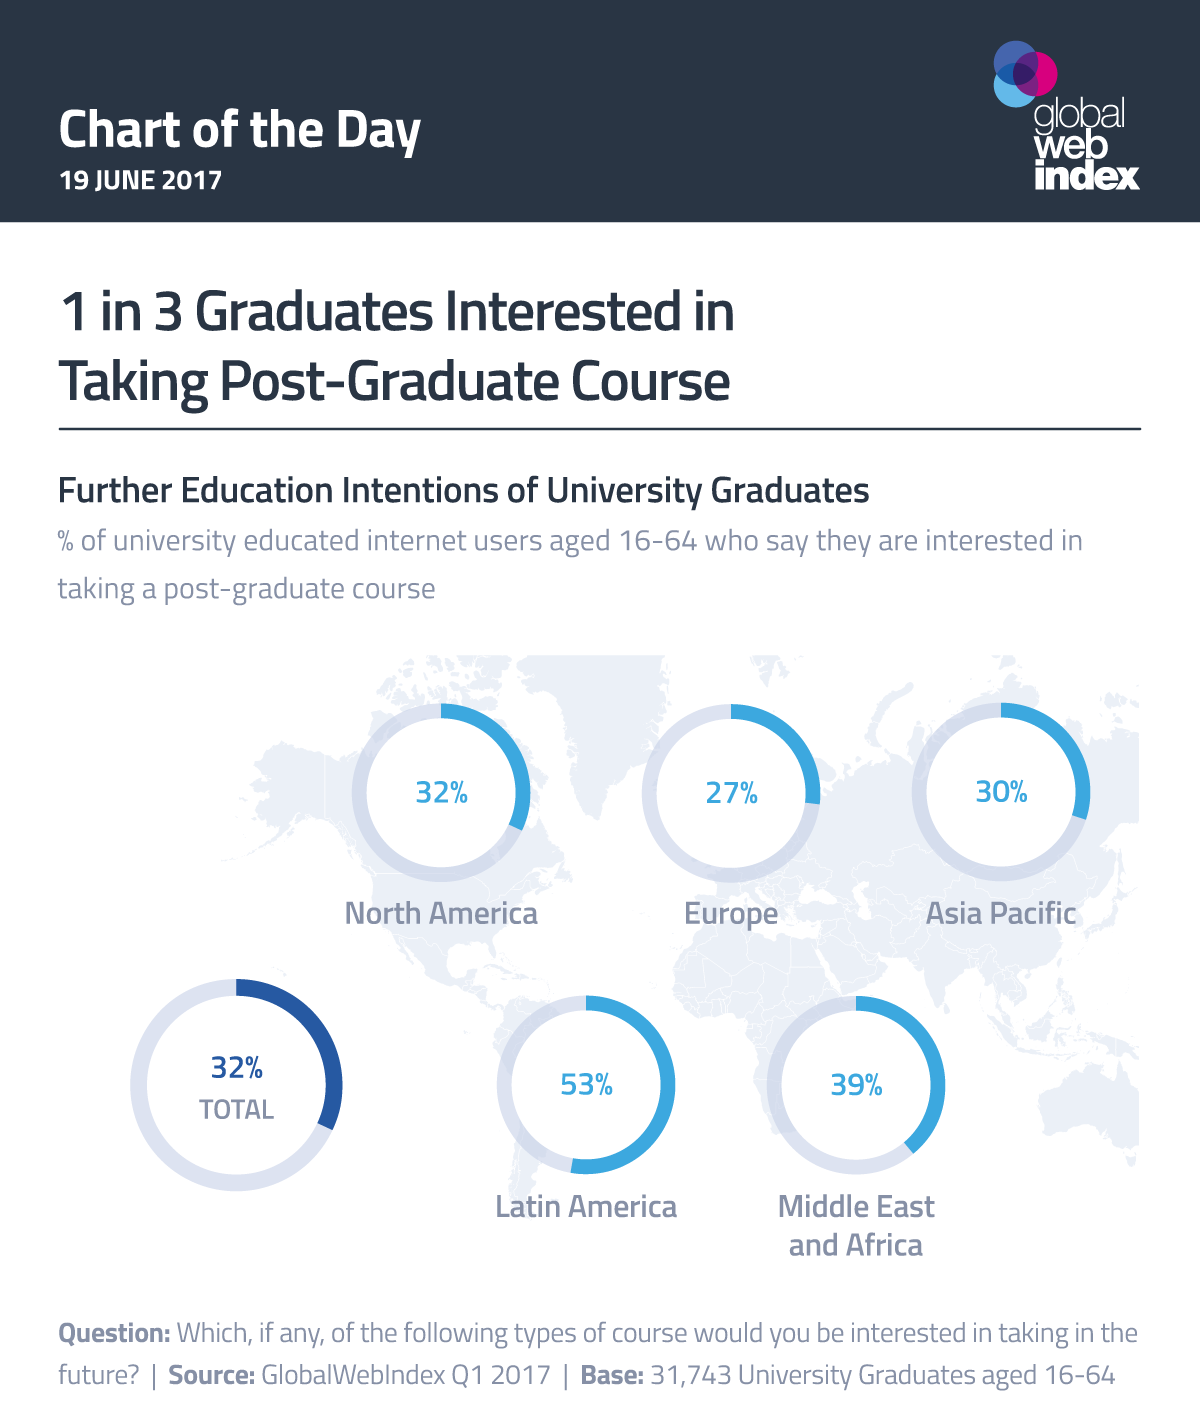 1 in 3 Graduates Interested in Taking Post-Graduate Course